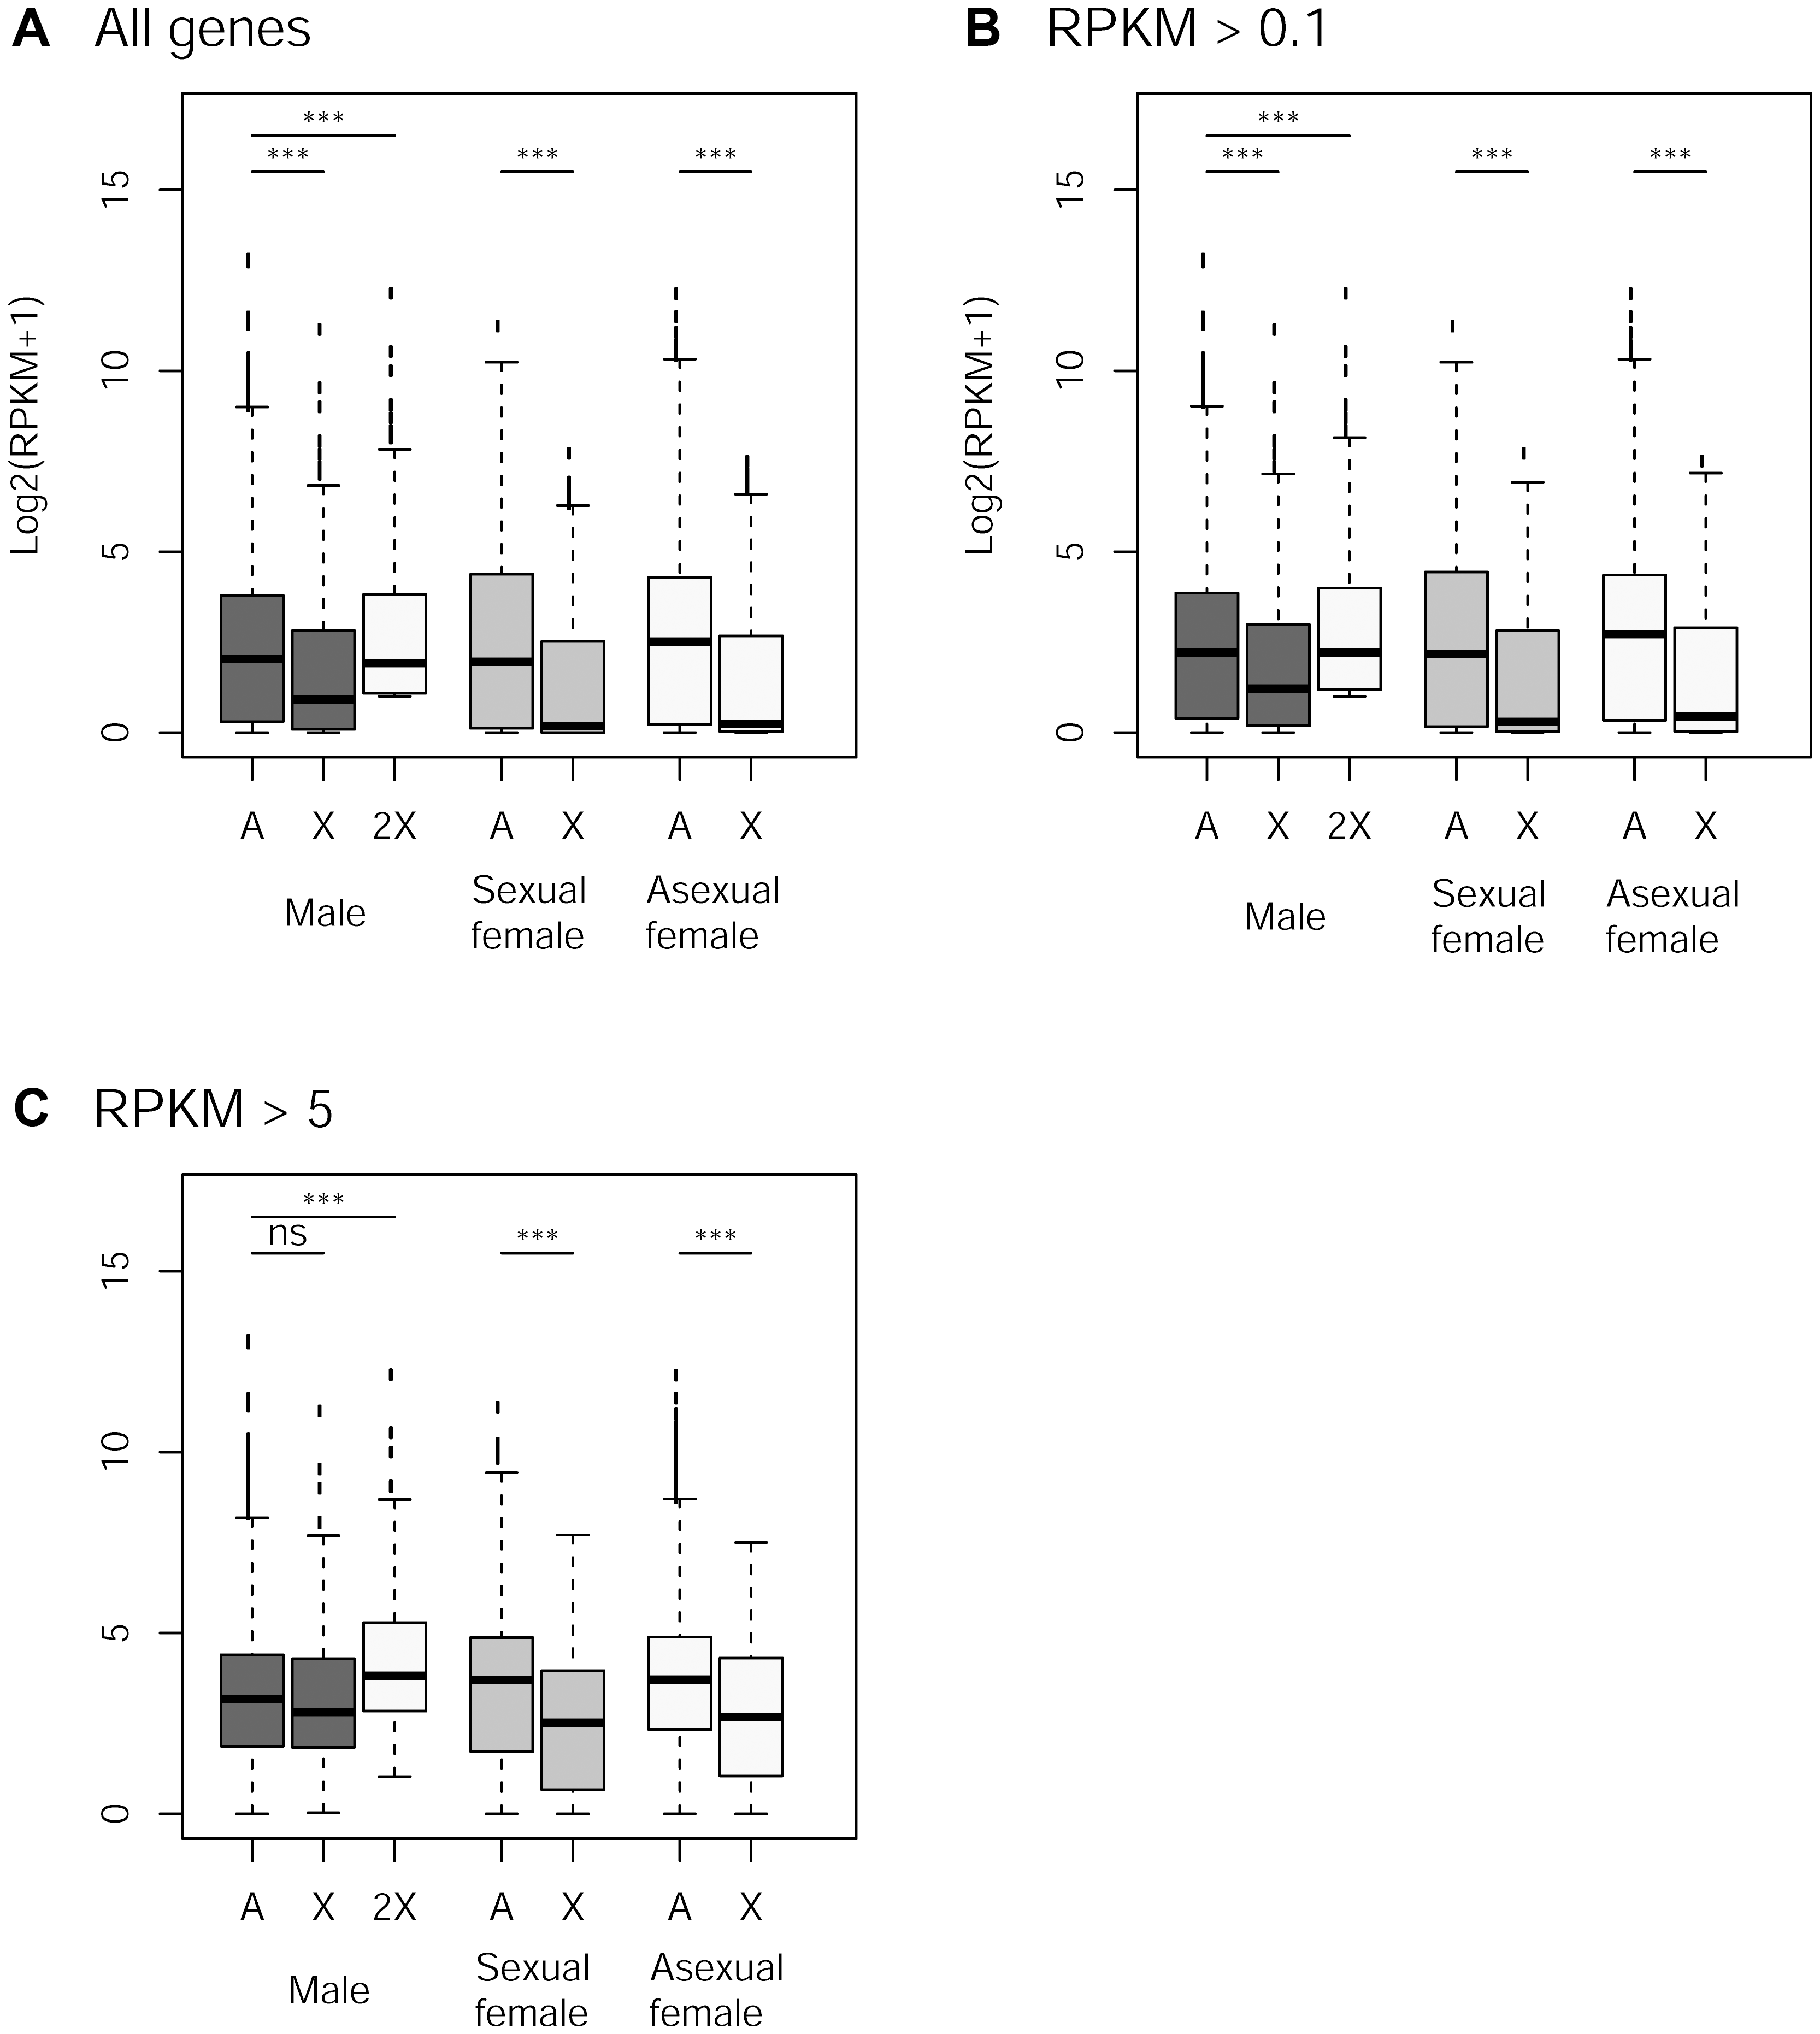 Expression rate of X-linked and autosomal genes in males, sexual females and asexual females.